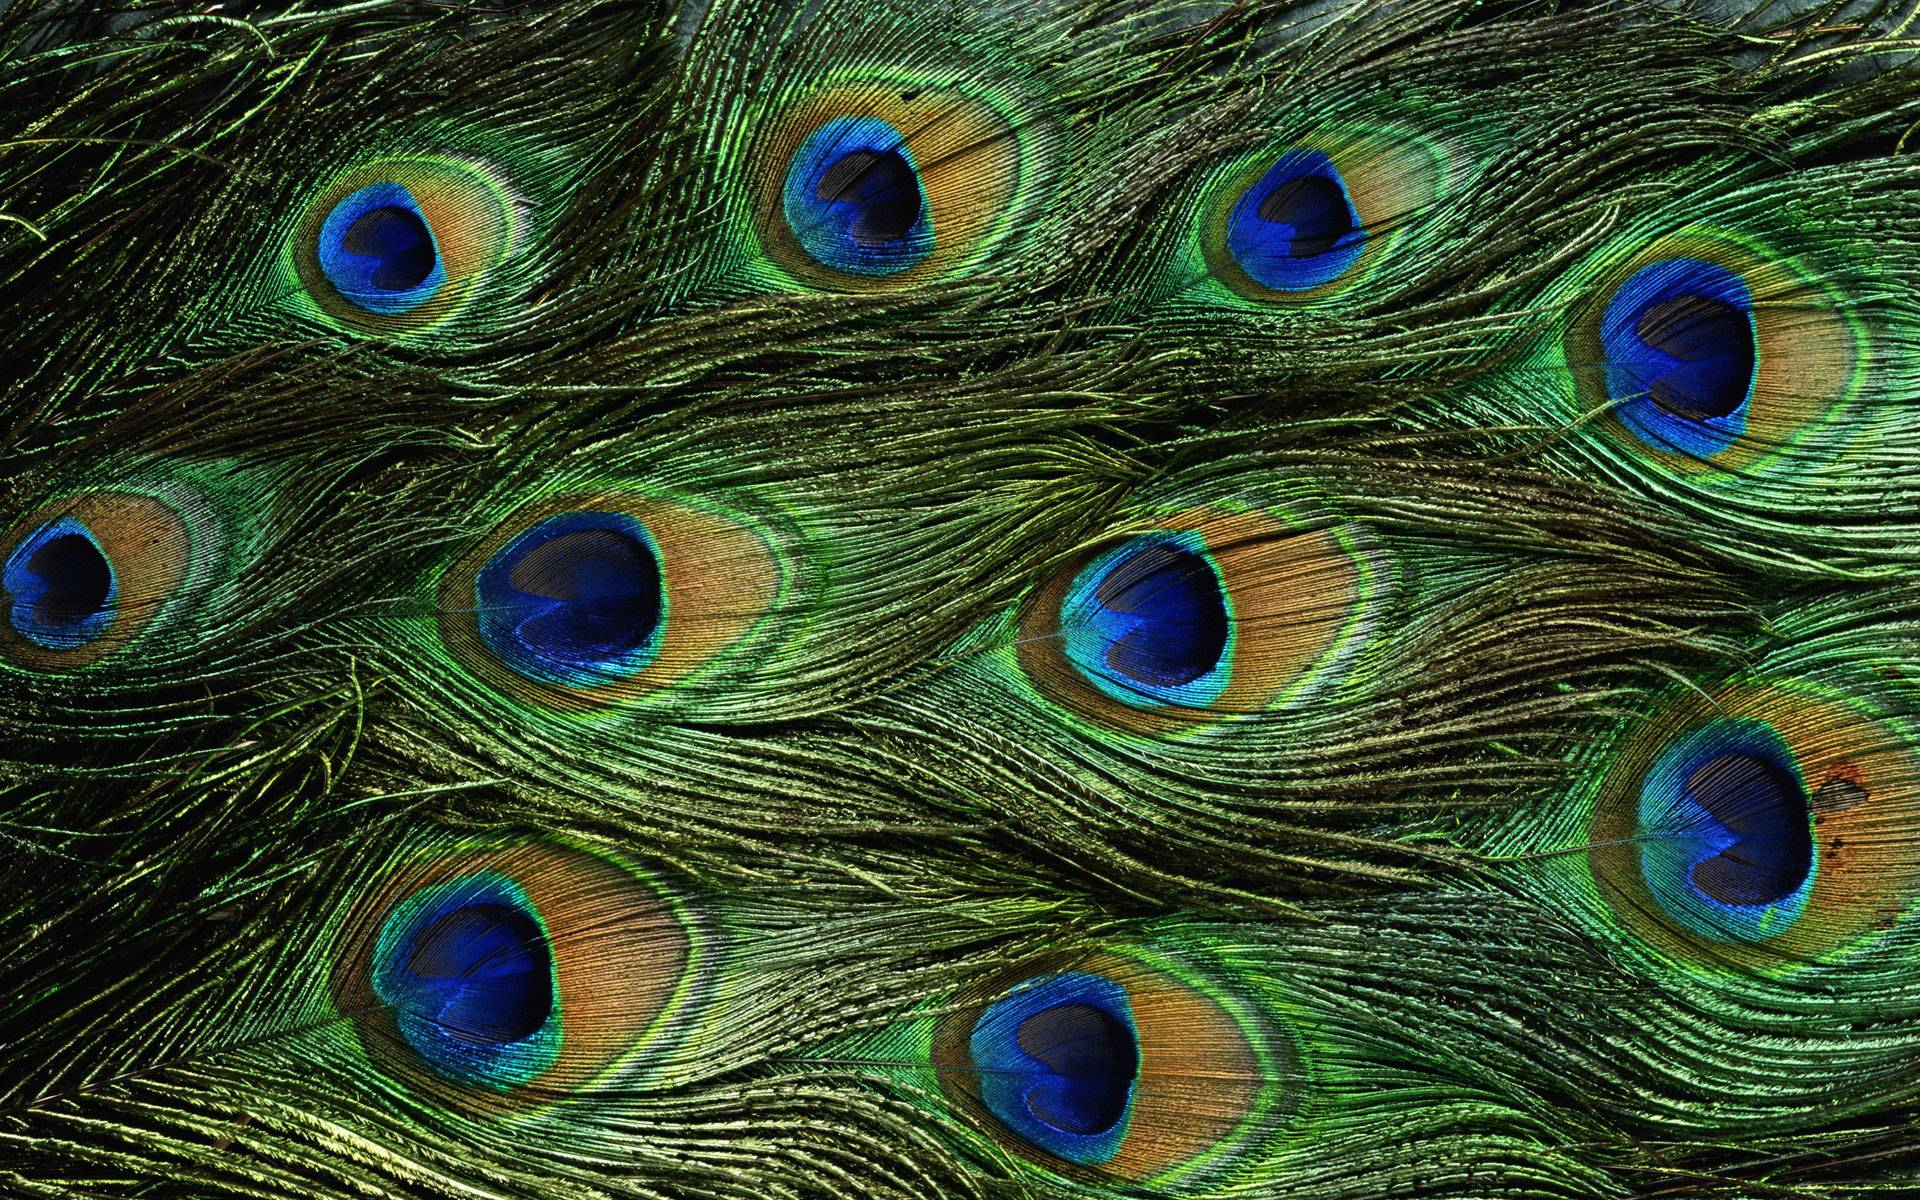 Peacock wallpapers - photo#16